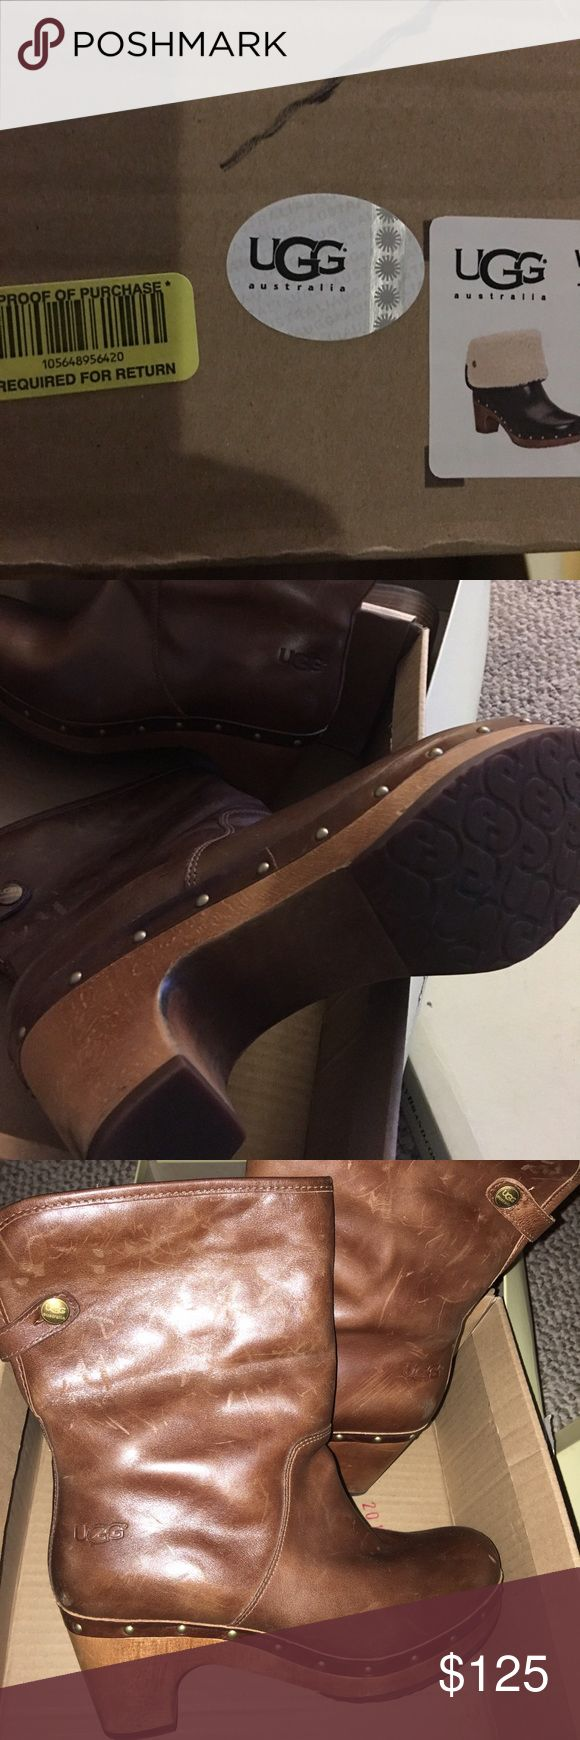 Ugg Lynnea Boots! Worn a few times, Authentic beautiful Uggs Lynnea Size 7! UGG Shoes Ankle Boots & Booties